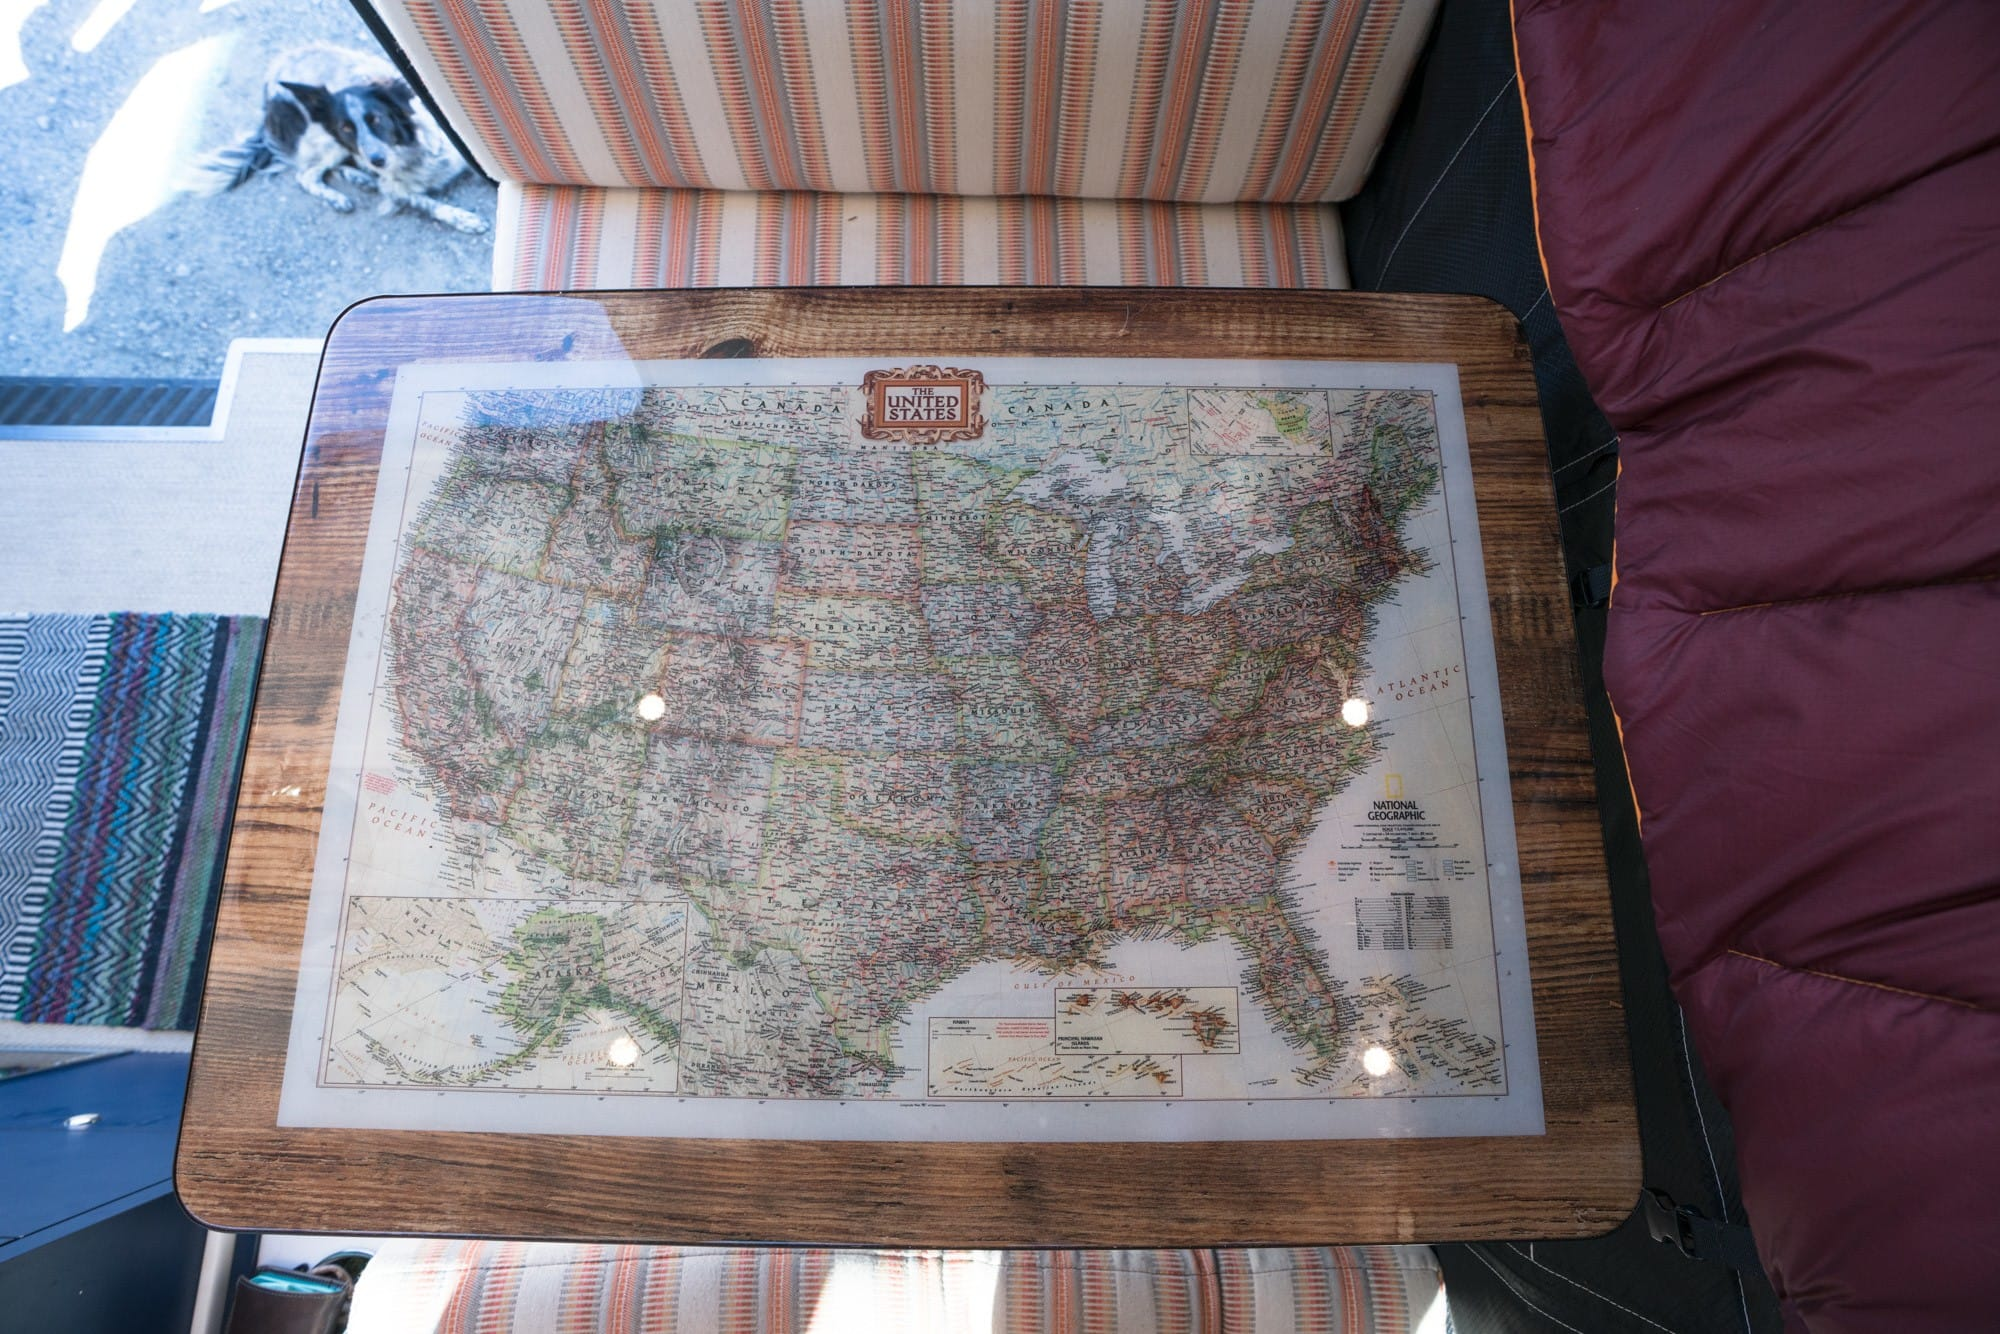 Awesome map dining table in a Sprinter Van